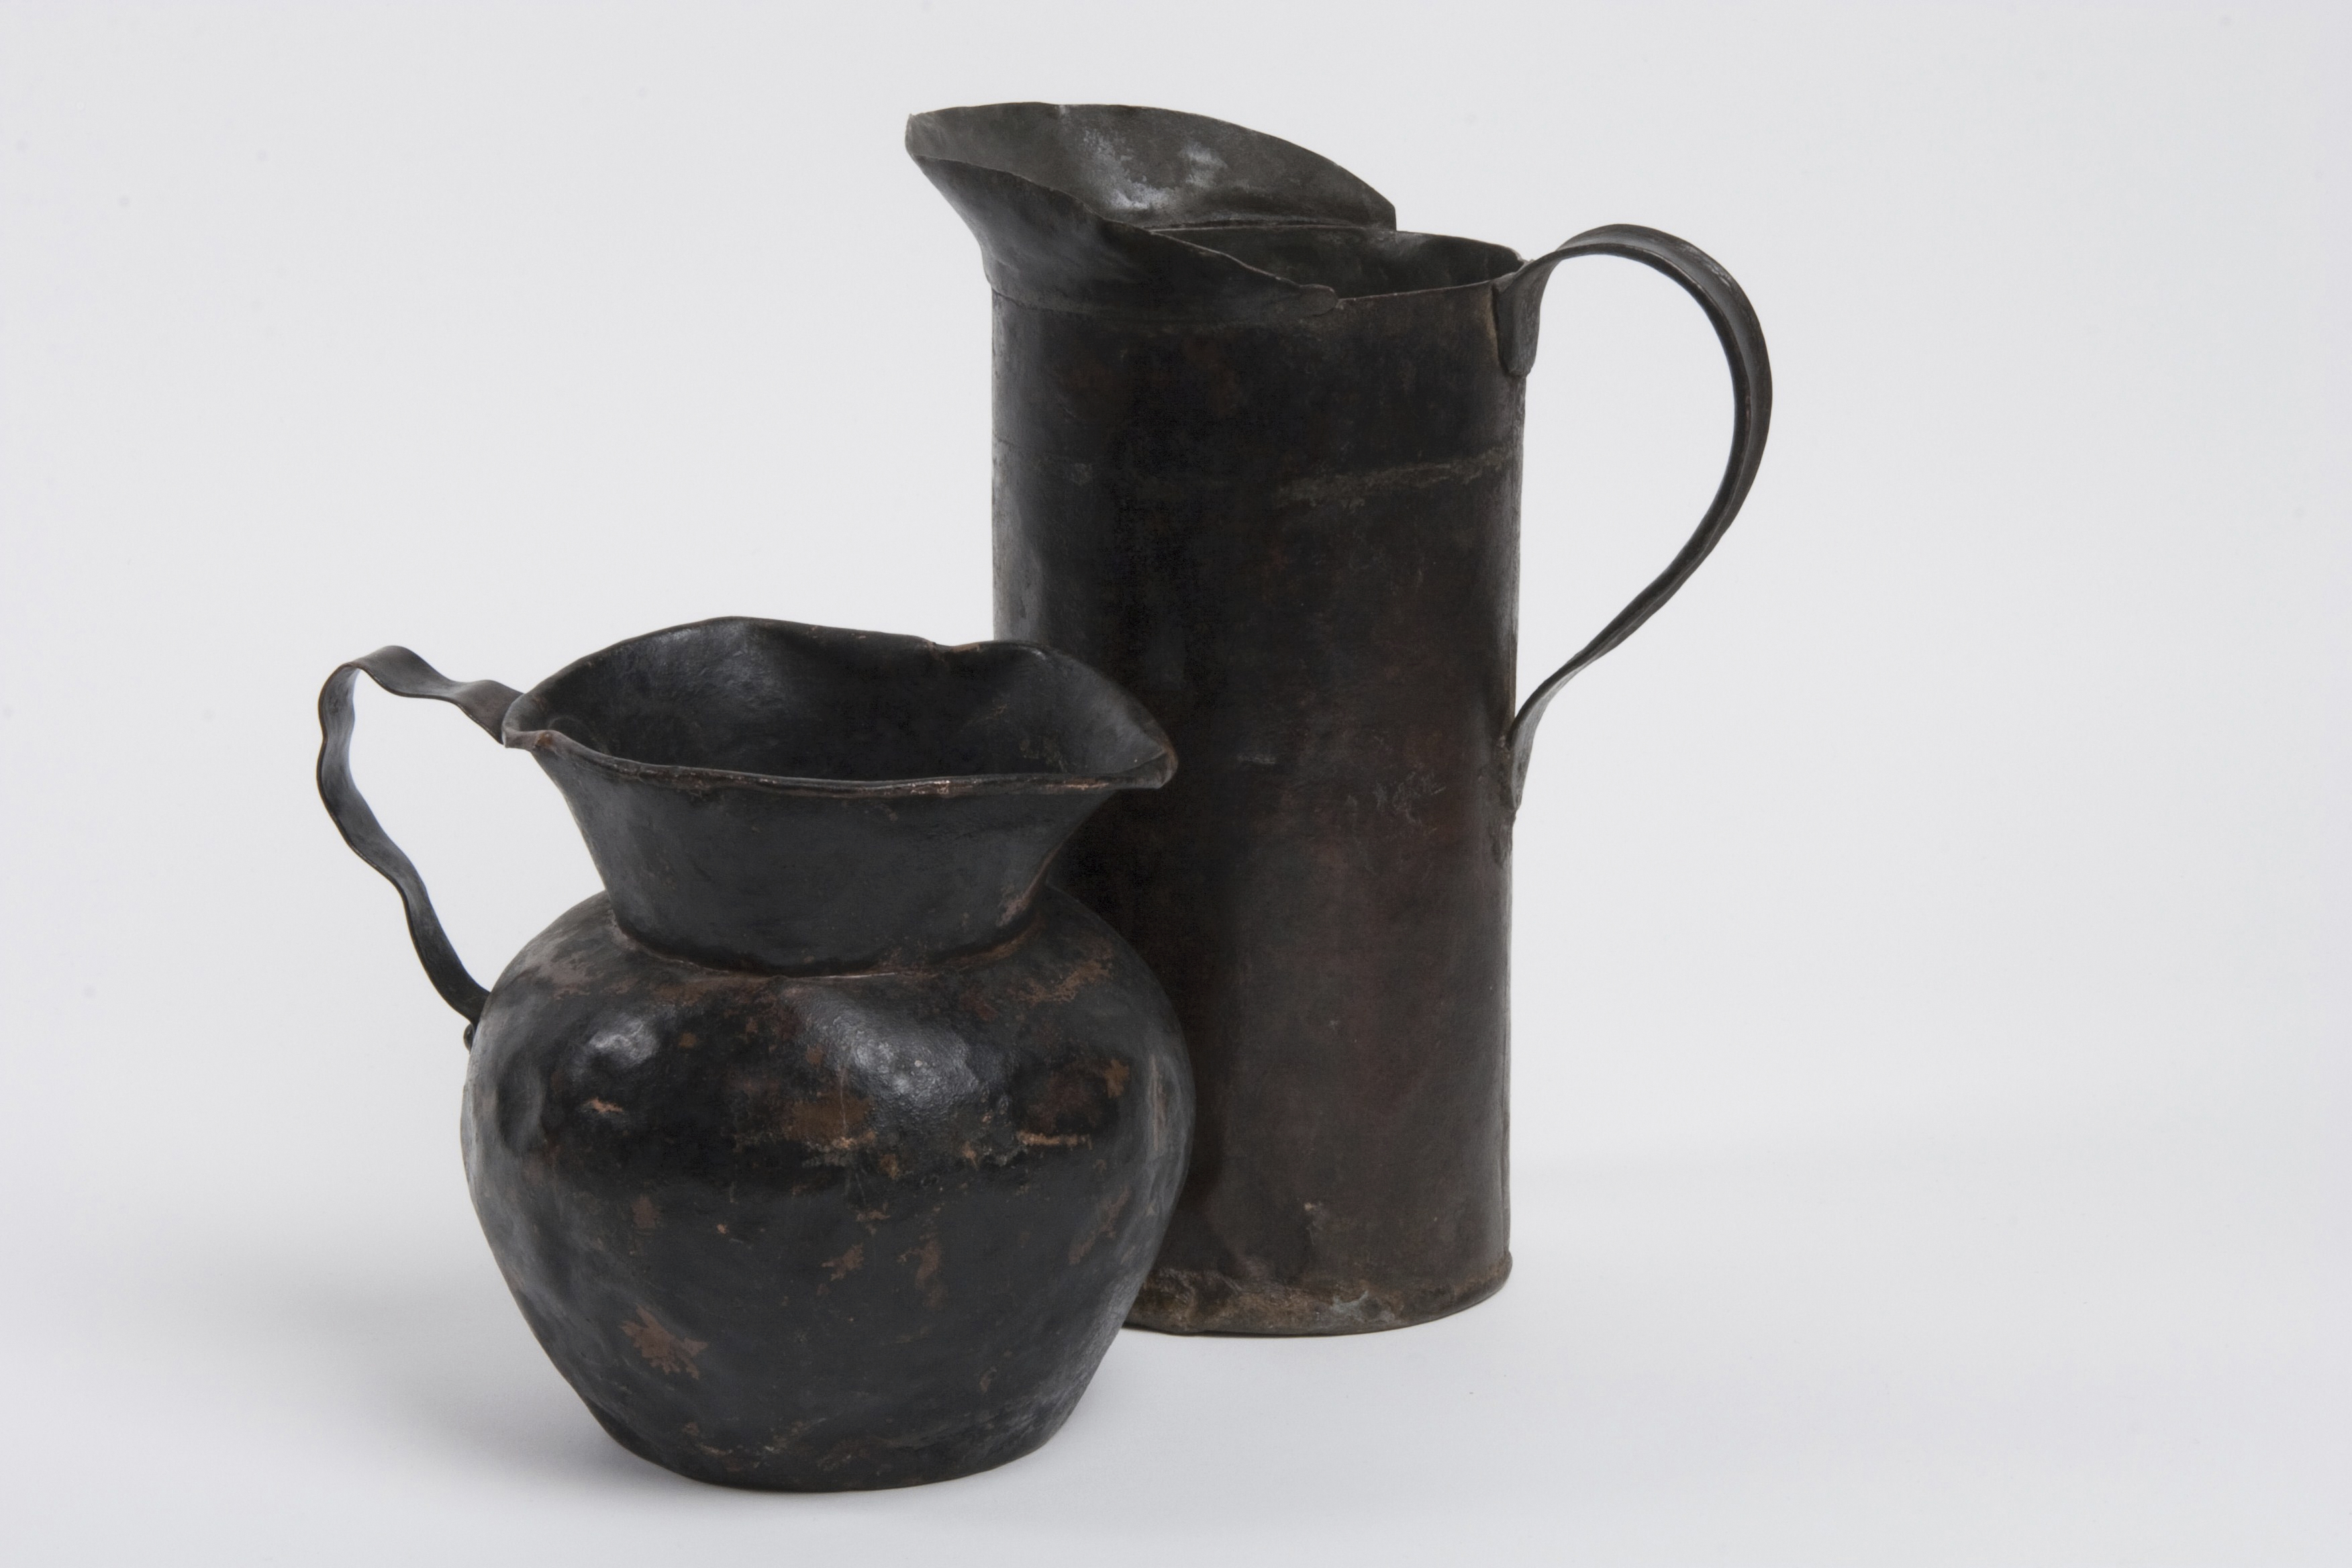 A photograph of two aged metal pitchers.